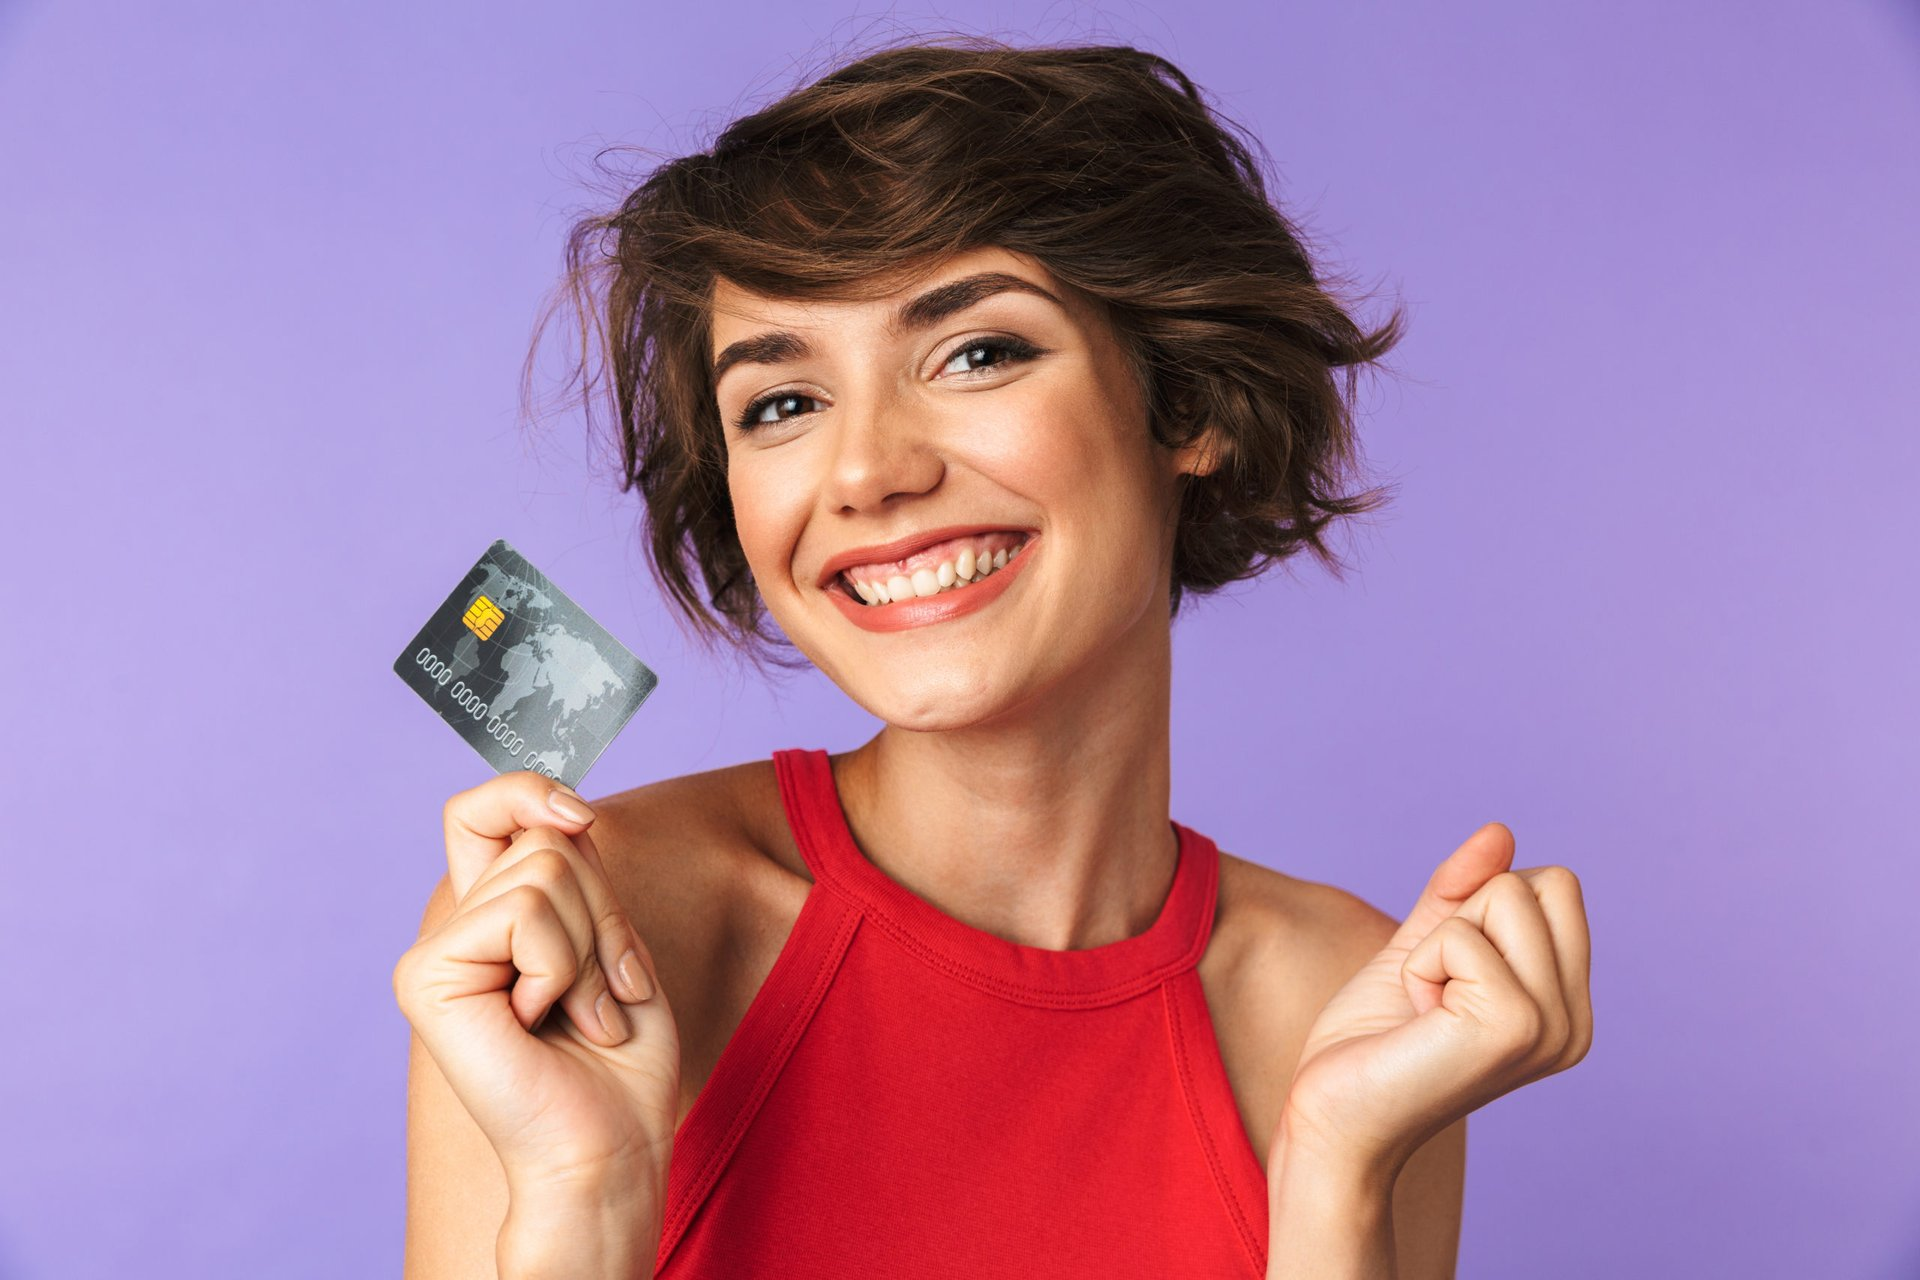 Smiling woman excited about her new credit card